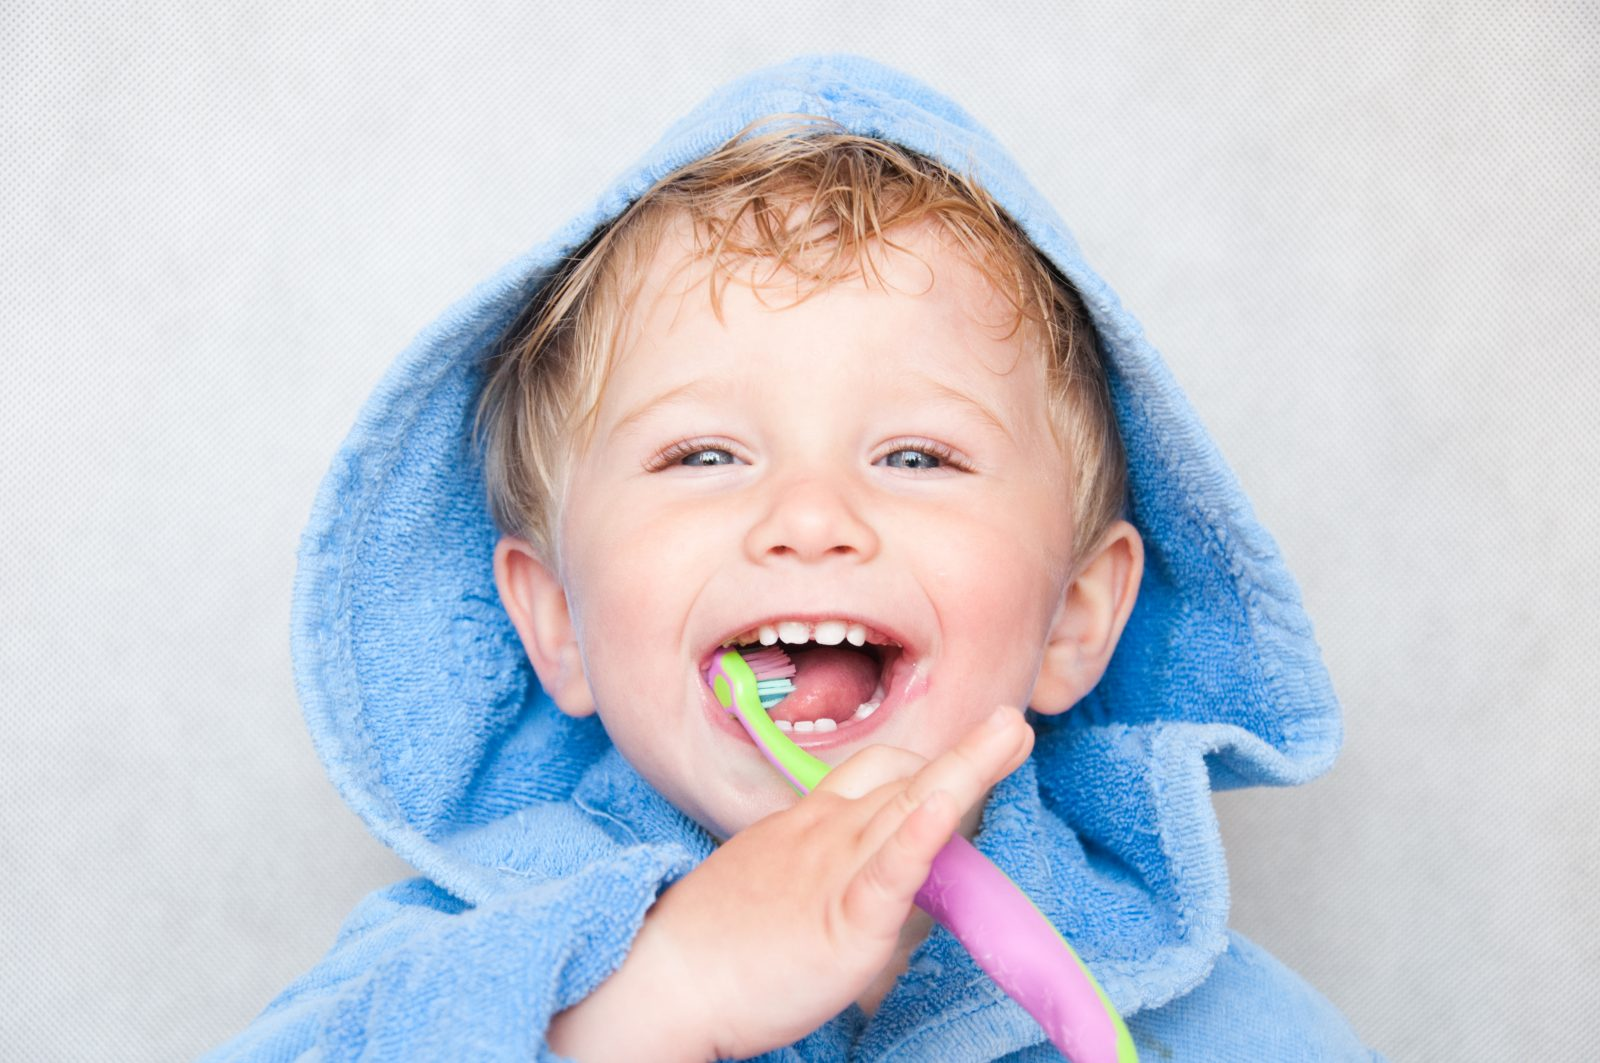 Childrens' Dentistry in Quincy, IL